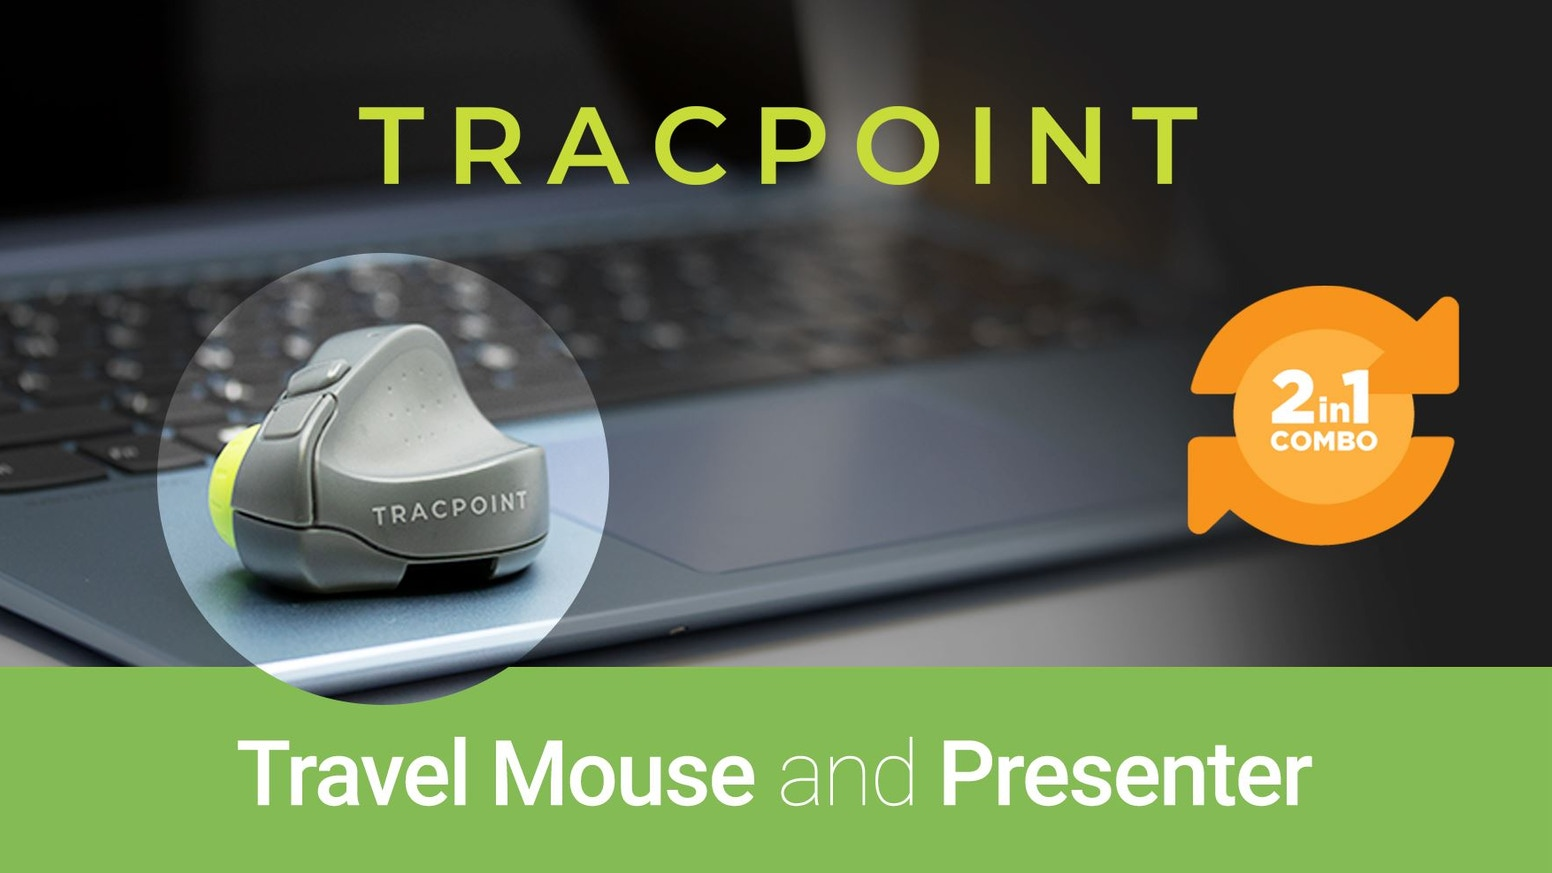 The ultimate TRAVEL MOUSE 3.0 and PRESENTER - 2 products in 1